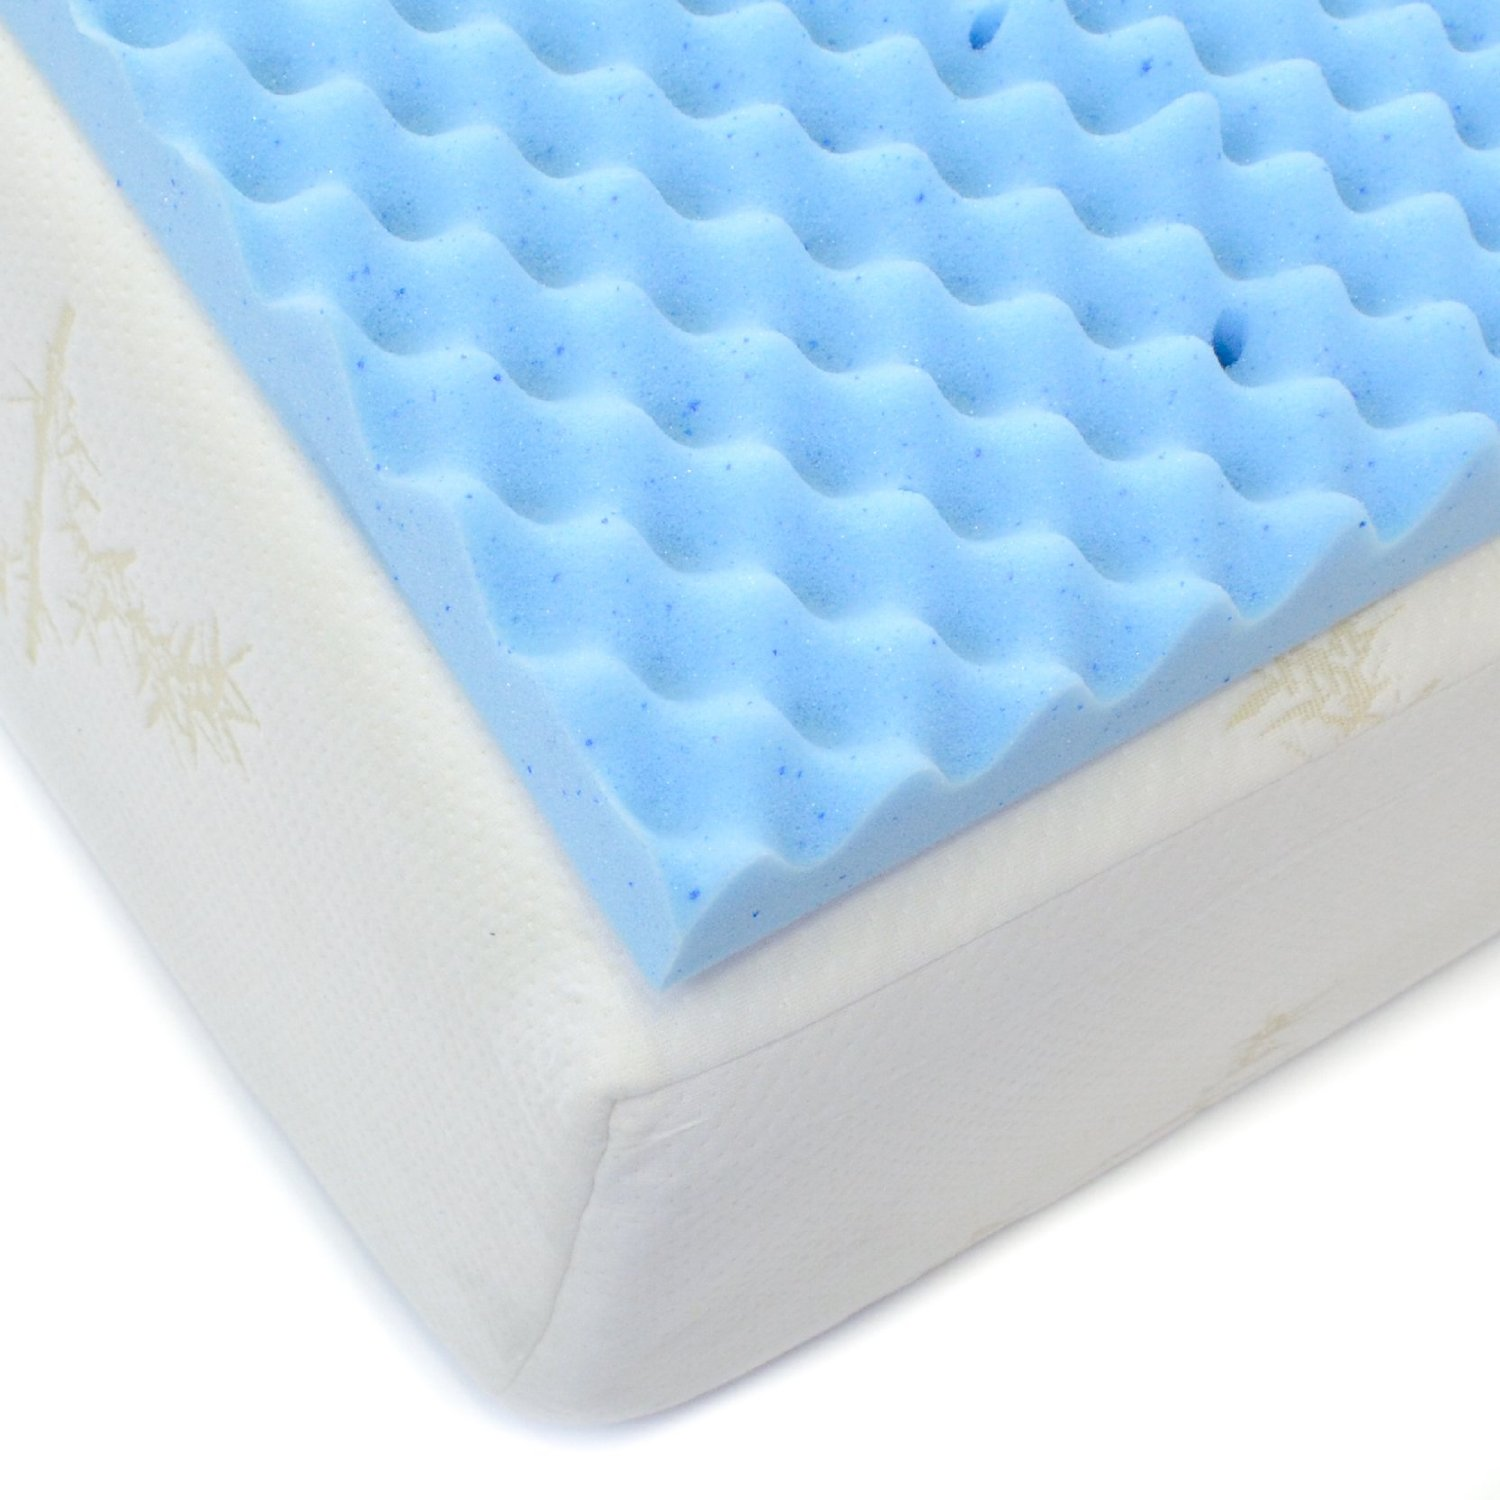 egg crate mattress topper queen Egg Crate Gel Infused Memory Foam Mattress Topper – Queen  egg crate mattress topper queen